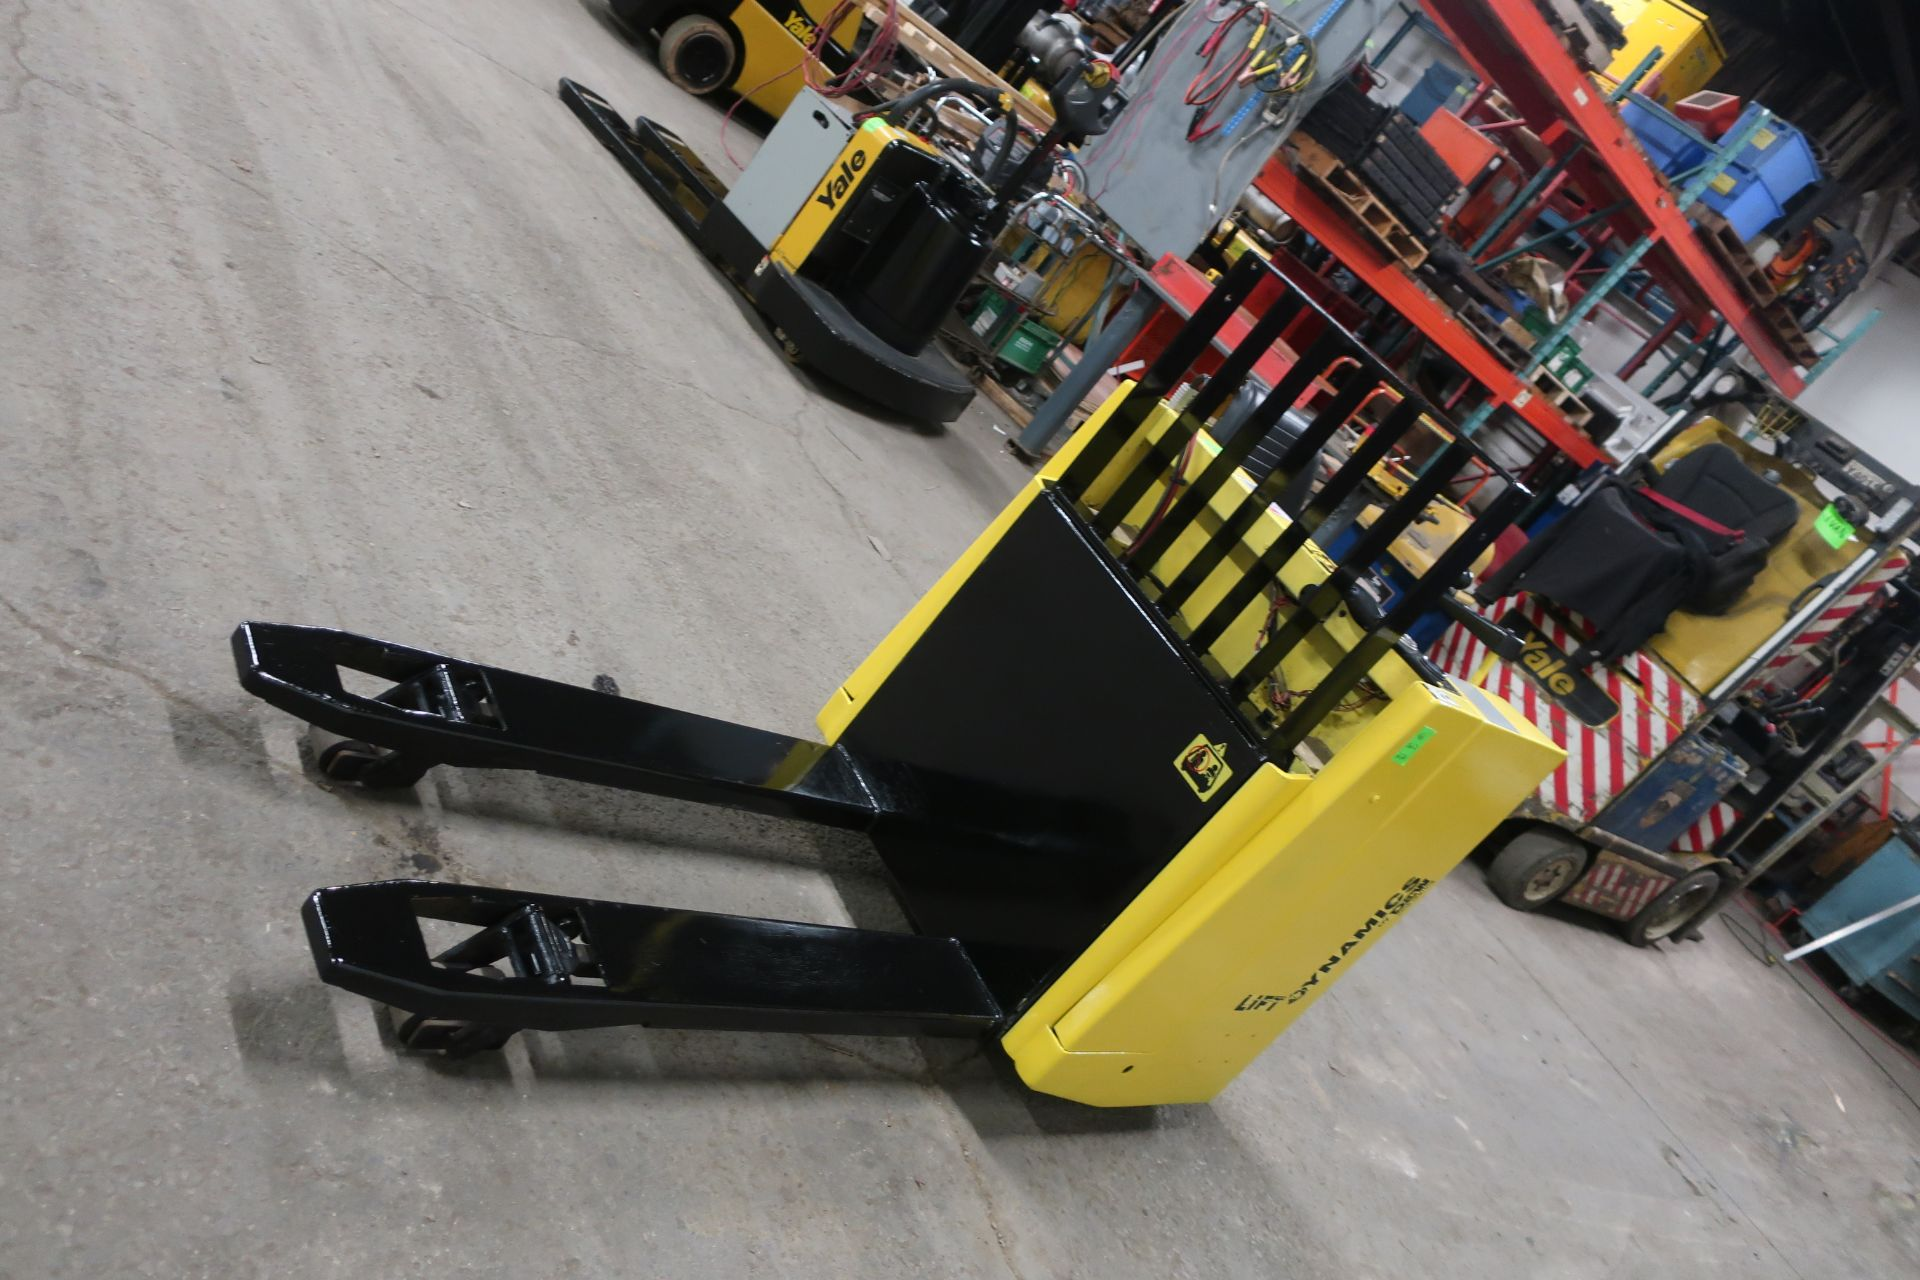 Dynamics Lift Sit down Electric Ride on Powered Pallet Cart Lift 6000lbs capacity safety into 2021 - Image 3 of 3